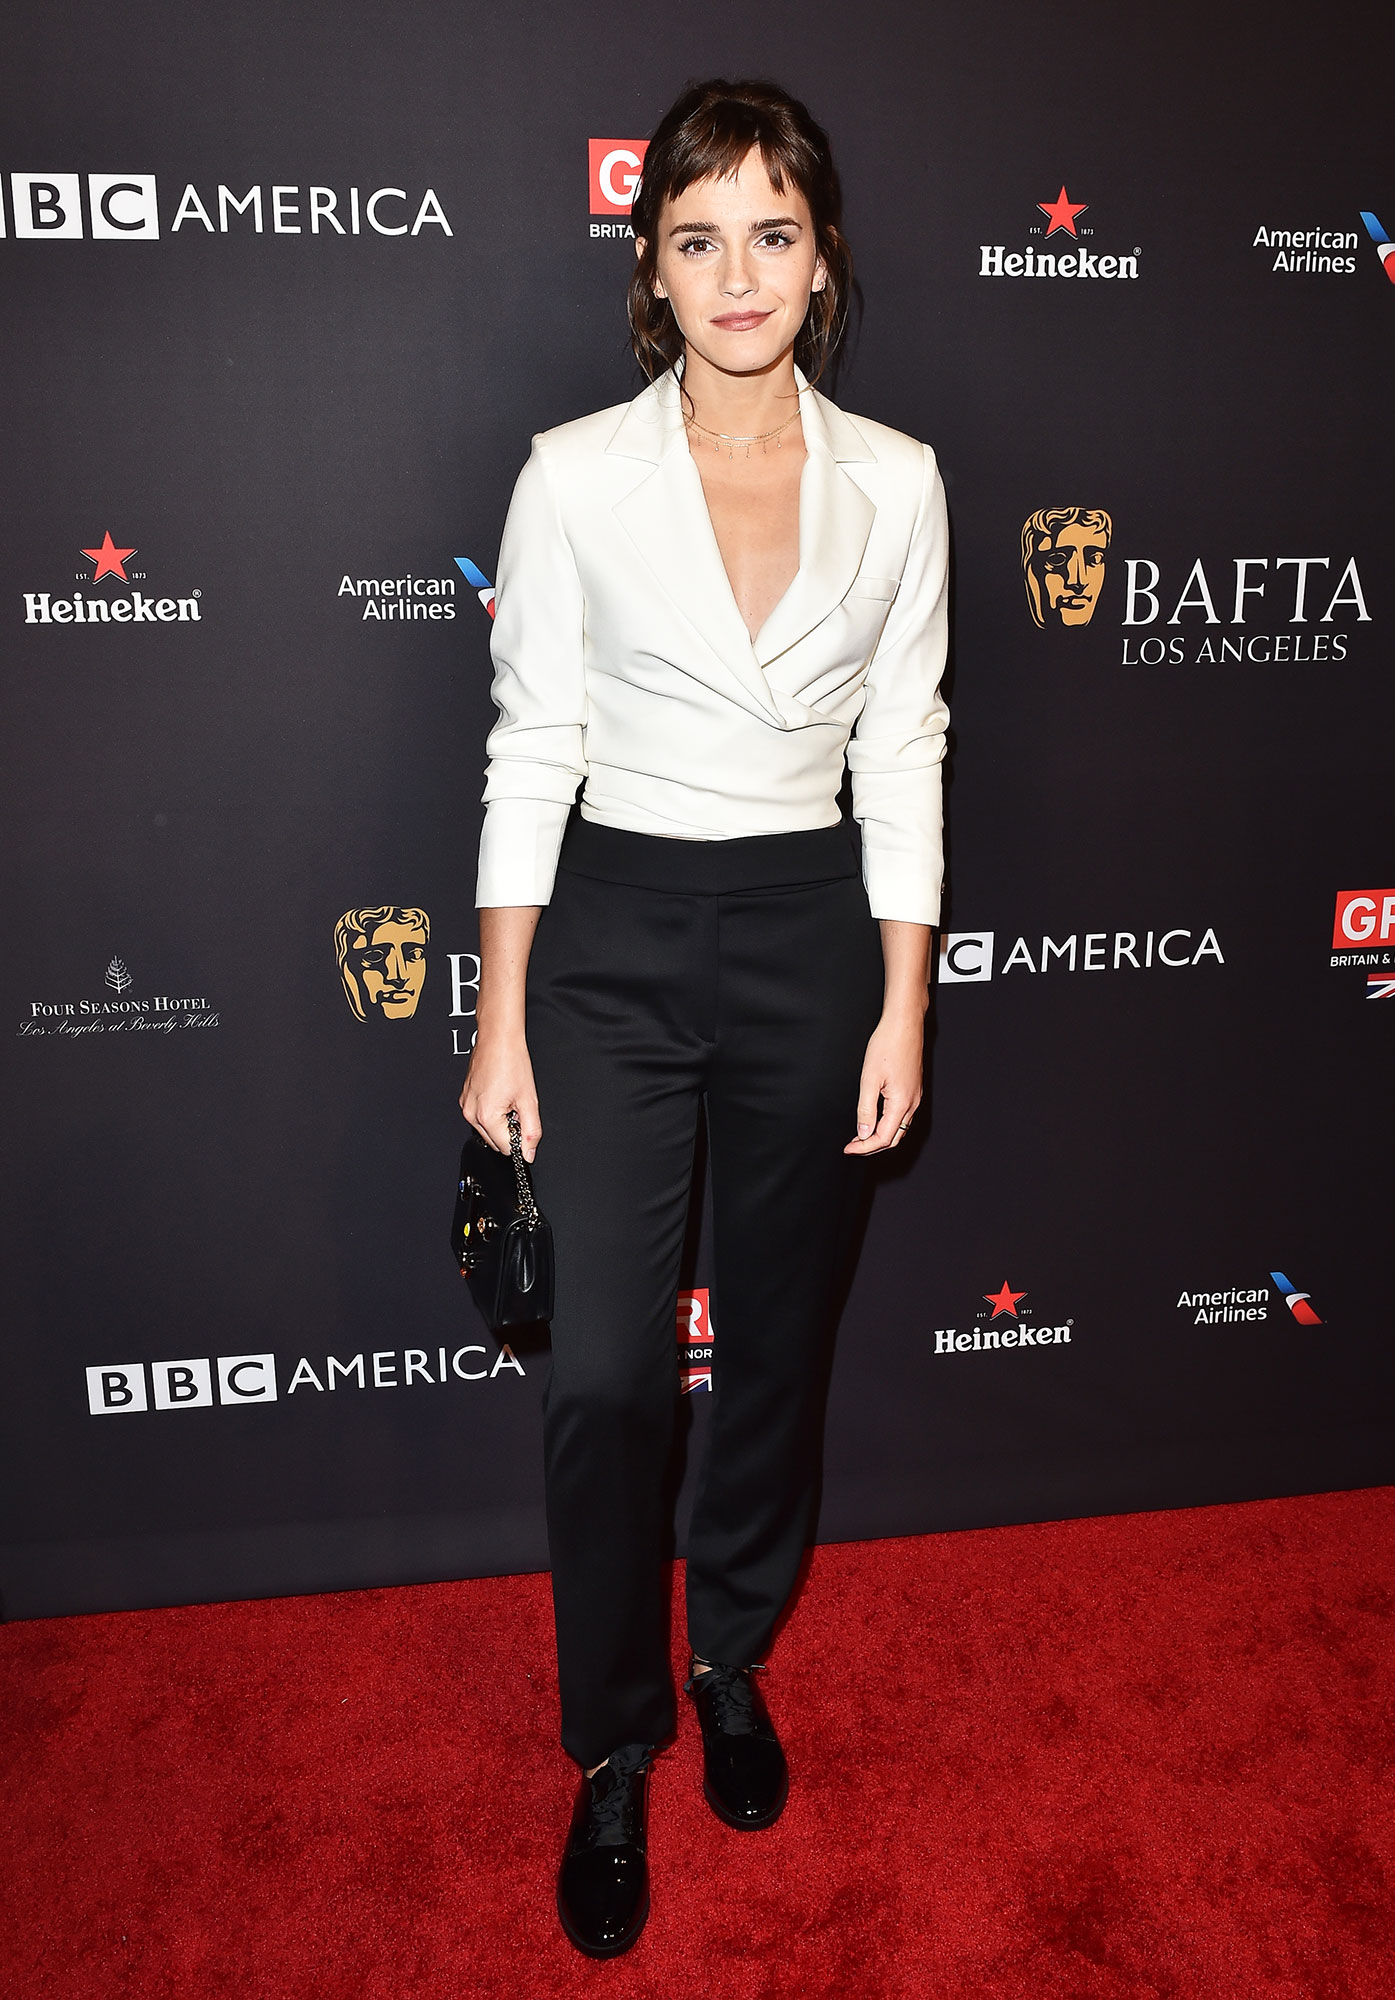 Emma Watson birthday red carpet outfits - Showing Us all how to rock chic separates on the red carpet, Watson wore a white Osman crop top with black trousers by the brand with her Susi Studio loafers and Ronald Van Der Kemp top-handle bag at the BAFTA Los Angeles Tea Party.